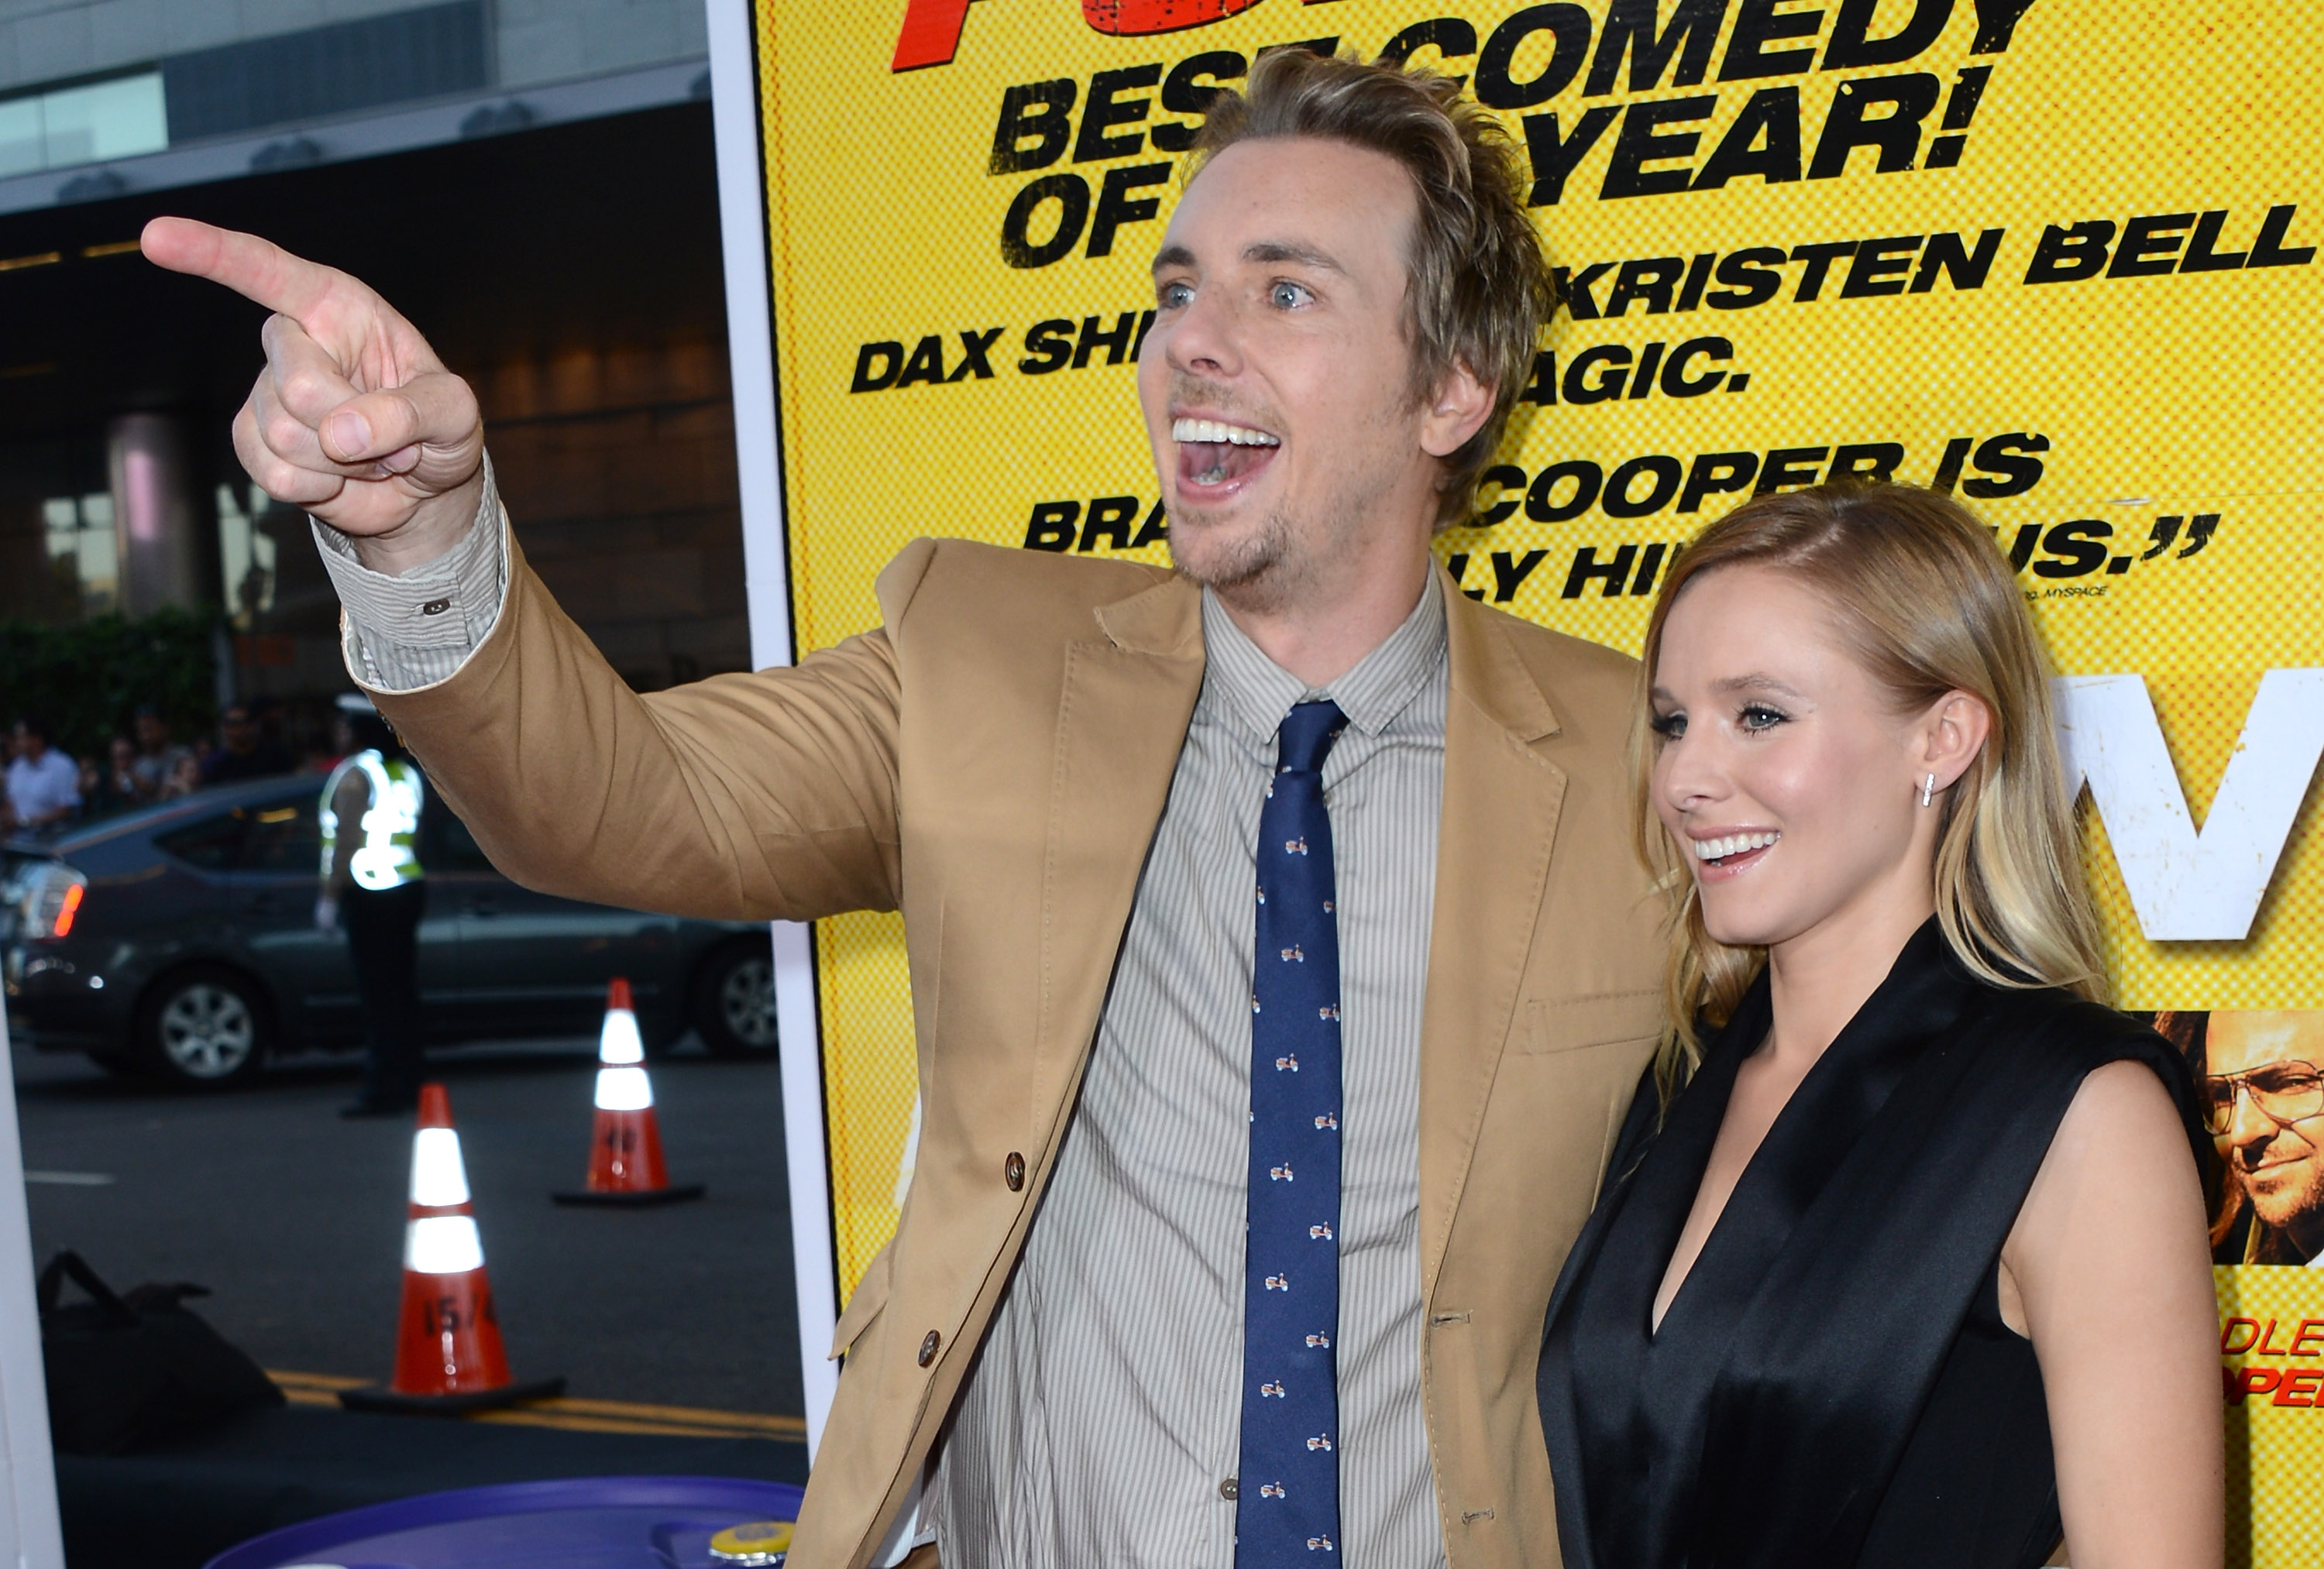 How Did Dax Shepard Kristen Bell Meet This Adorable Duo Wasnt